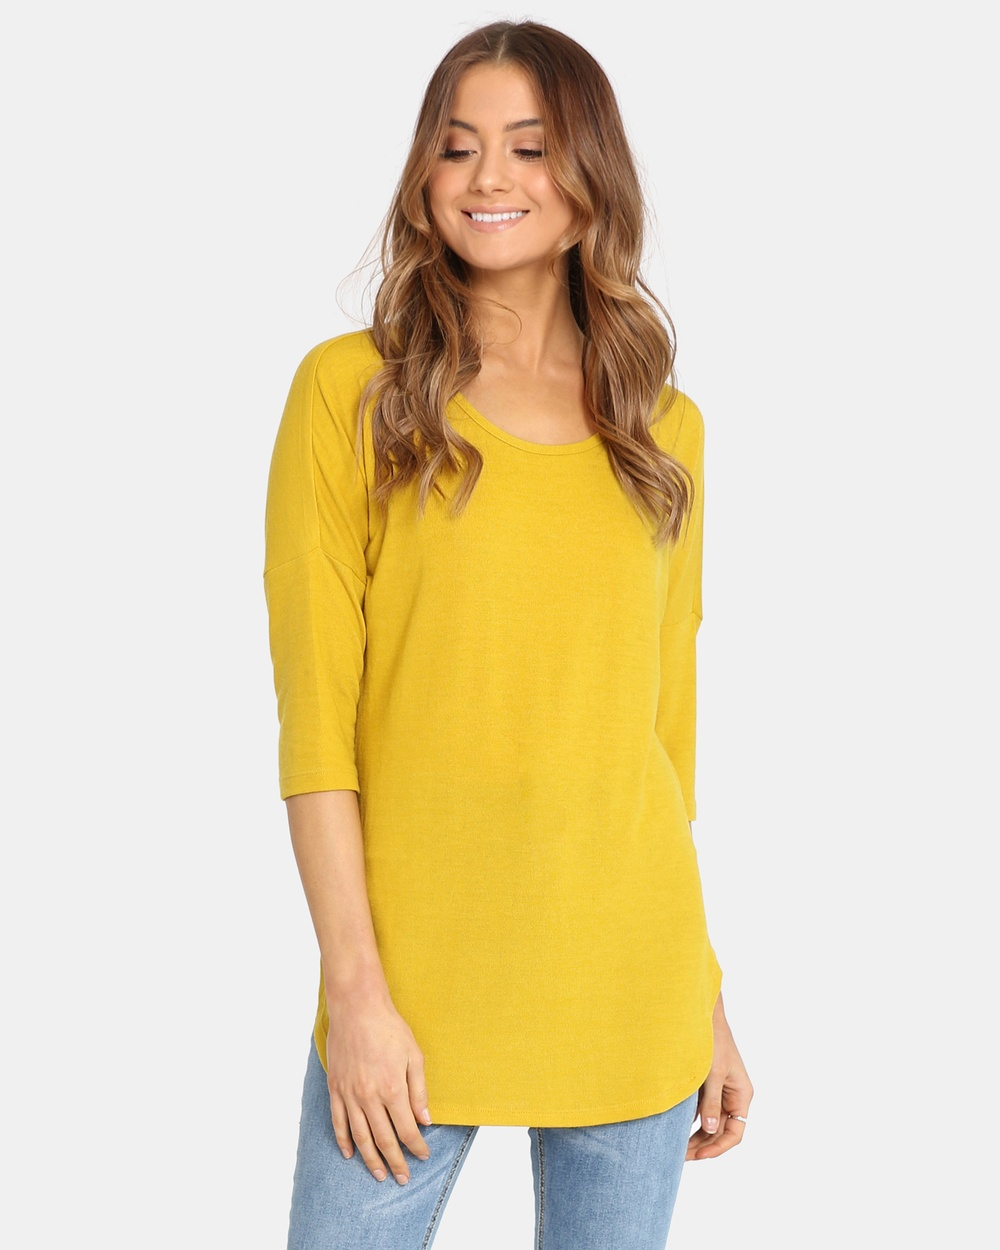 Madison Square Trixie Top Tops Mustard Trixie Top